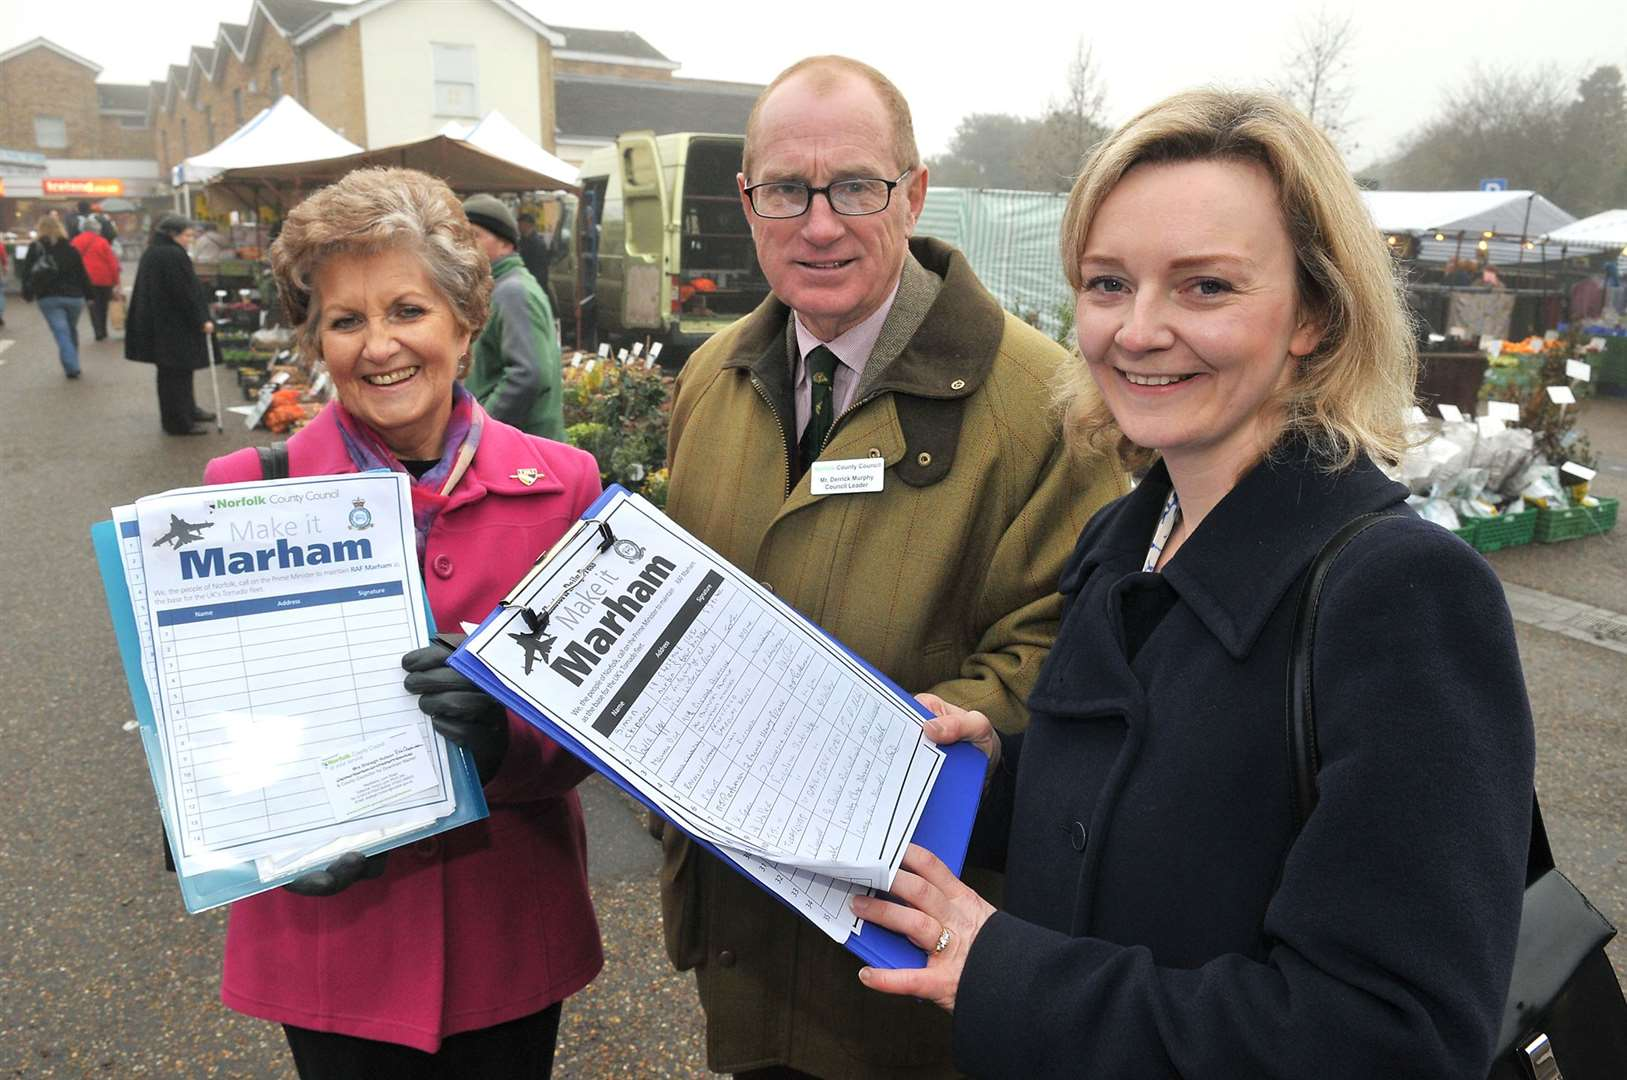 Former Norfolk County Council leader Derrick Murphy, seen here, centre, campaigning to save RAF Marham with MP Liz Truss, right, has died.